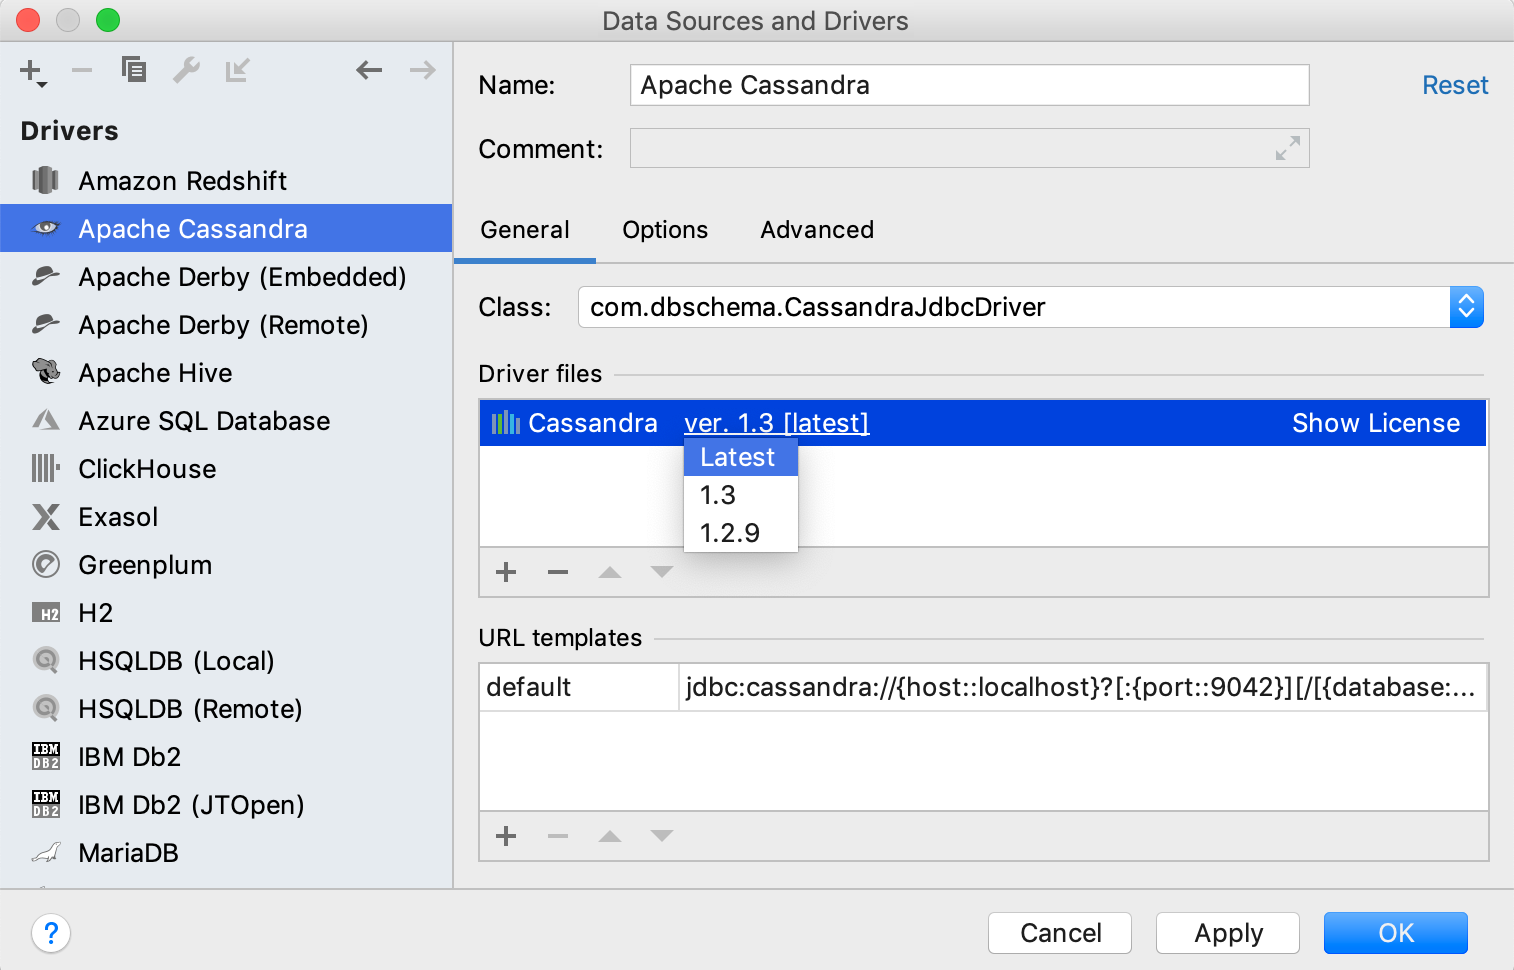 Verify the version of the JDBC driver